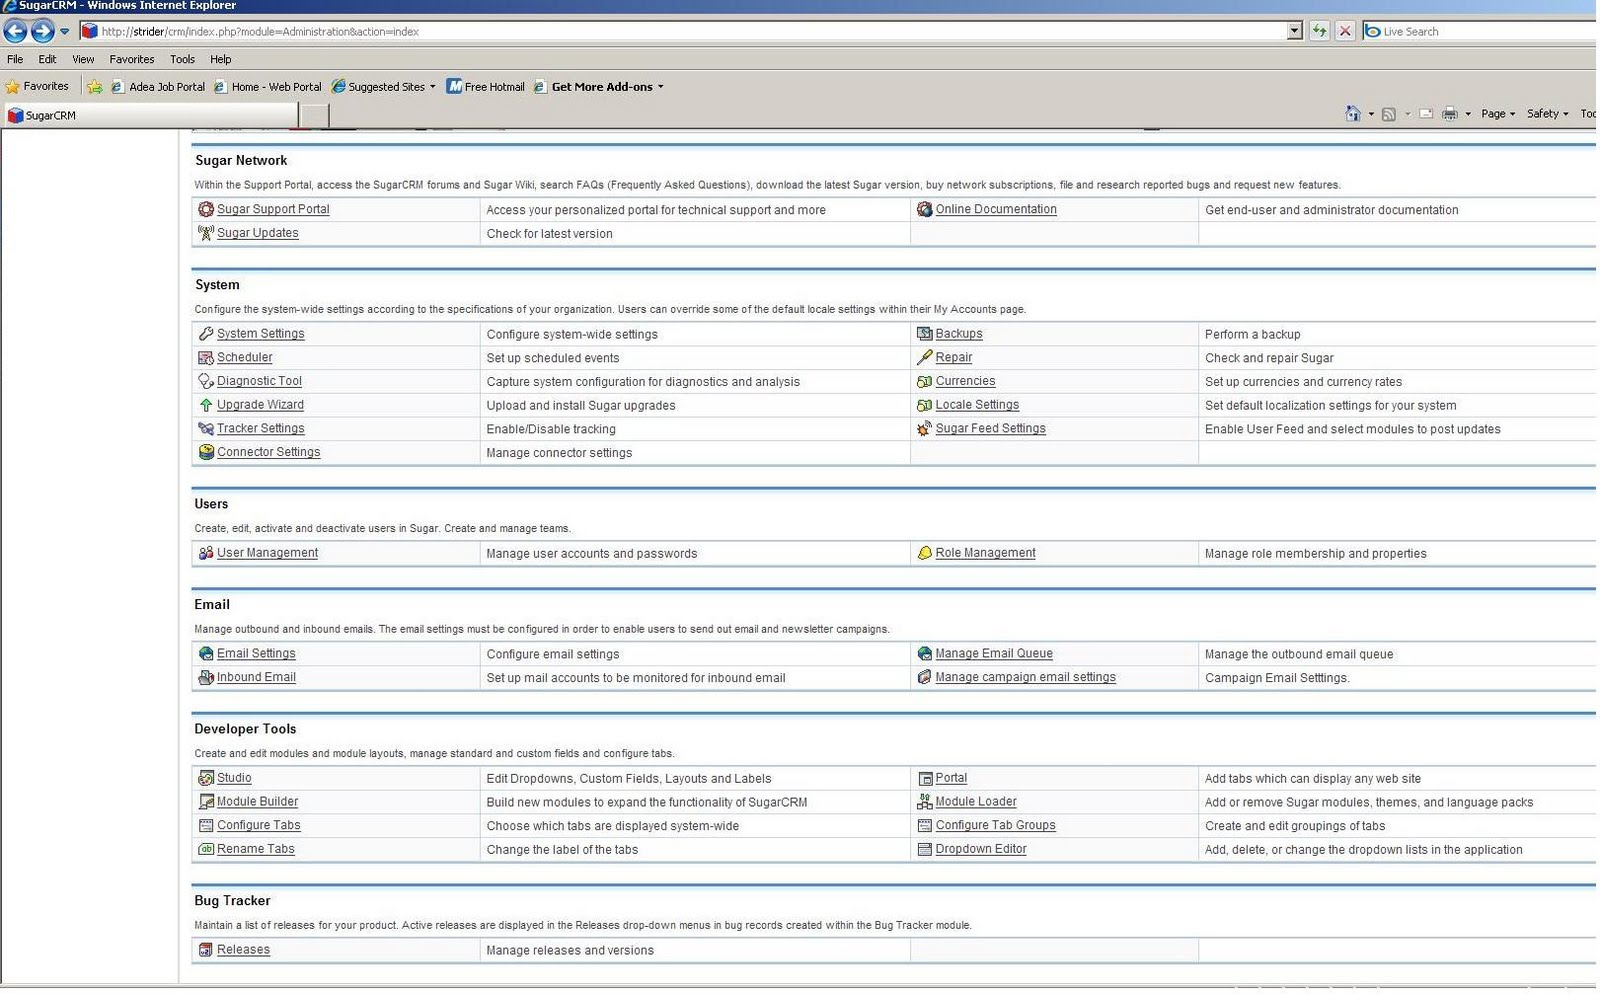 Jassem's Technology Blog: How to Install SugarCRM with SQL